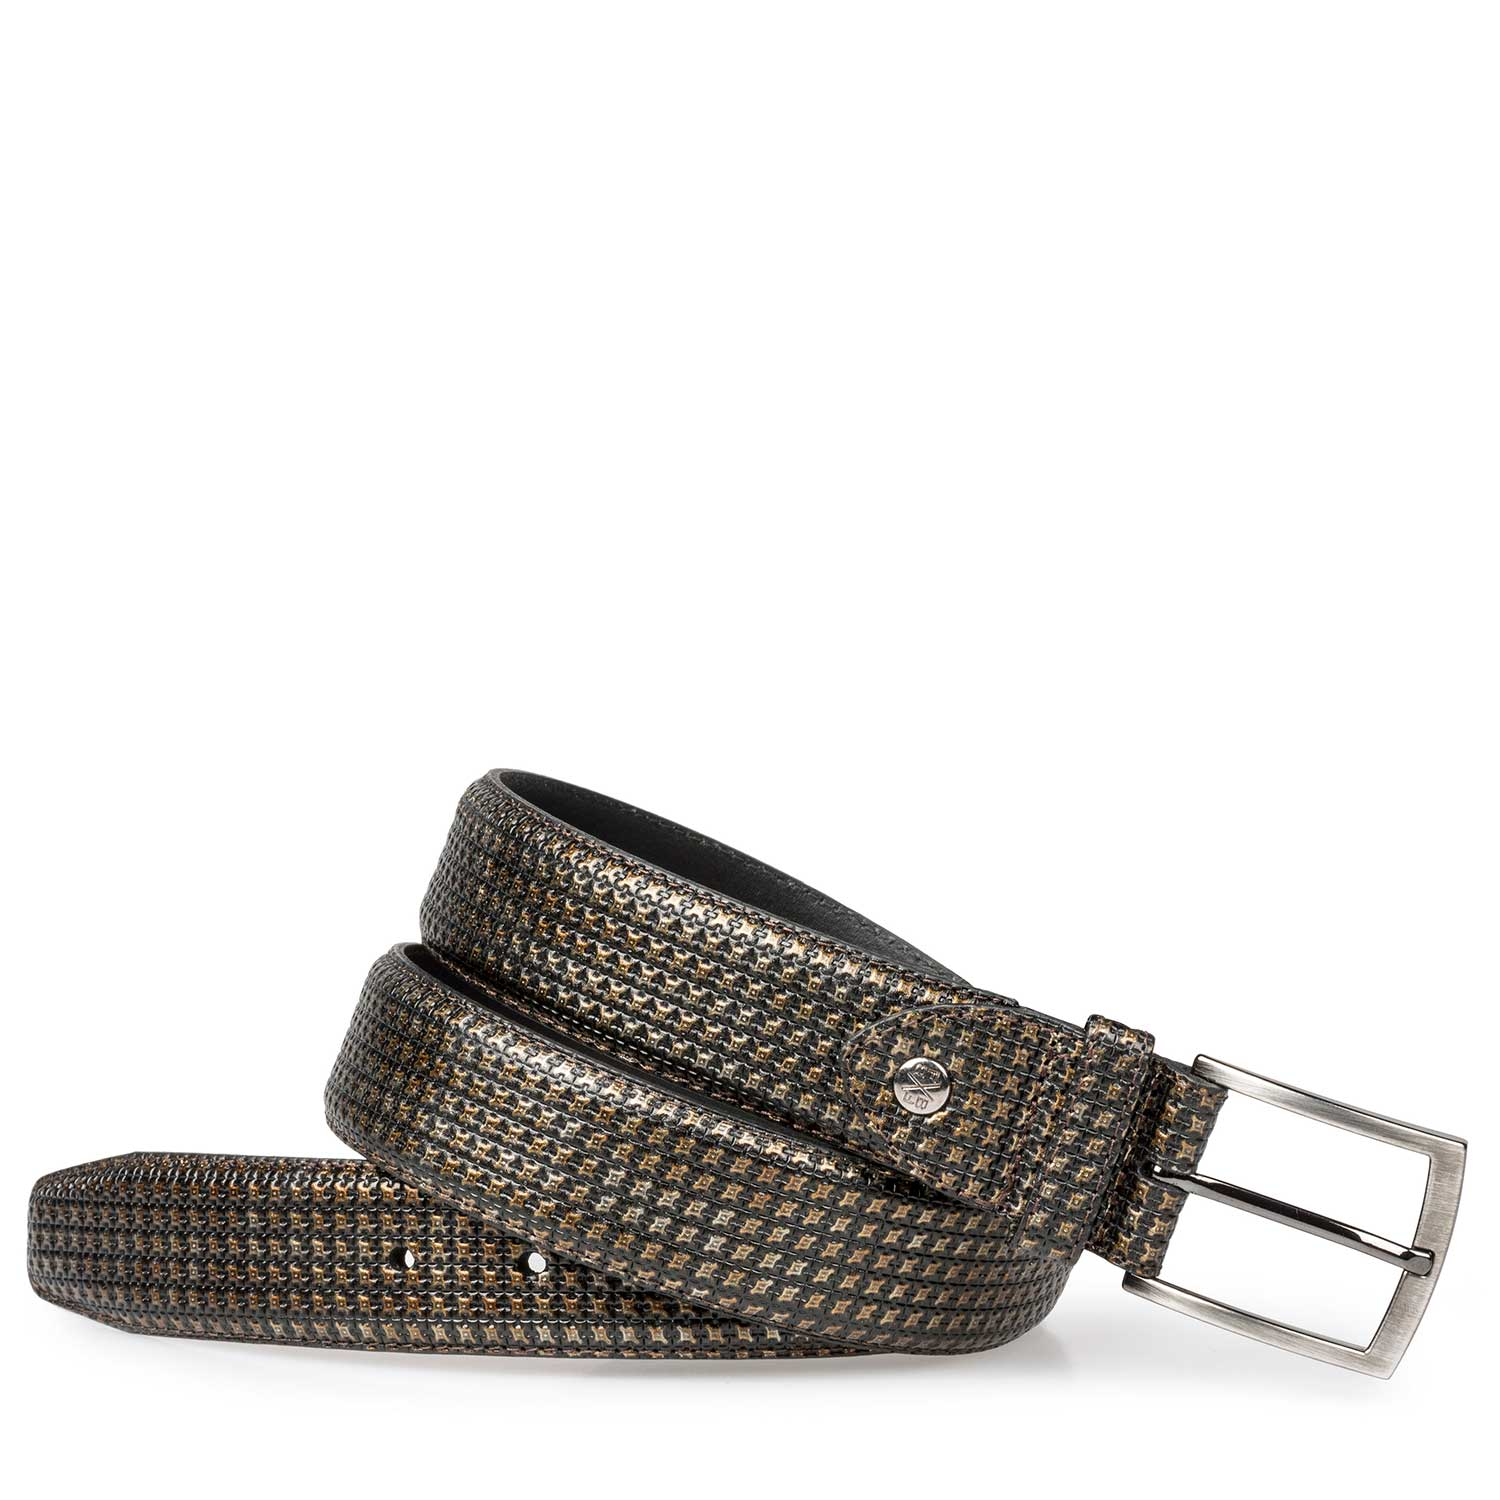 75190/25 - Bronze-coloured calf's leather belt with structural pattern